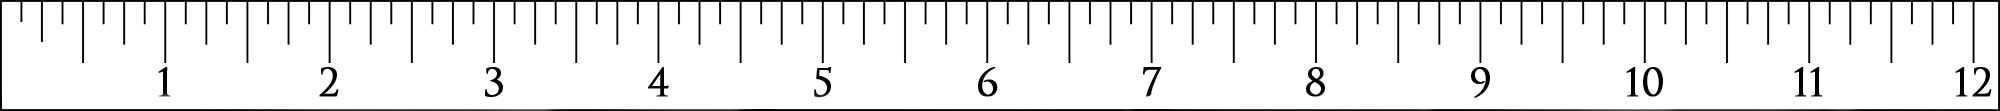 necklace-lengths-banner.jpg